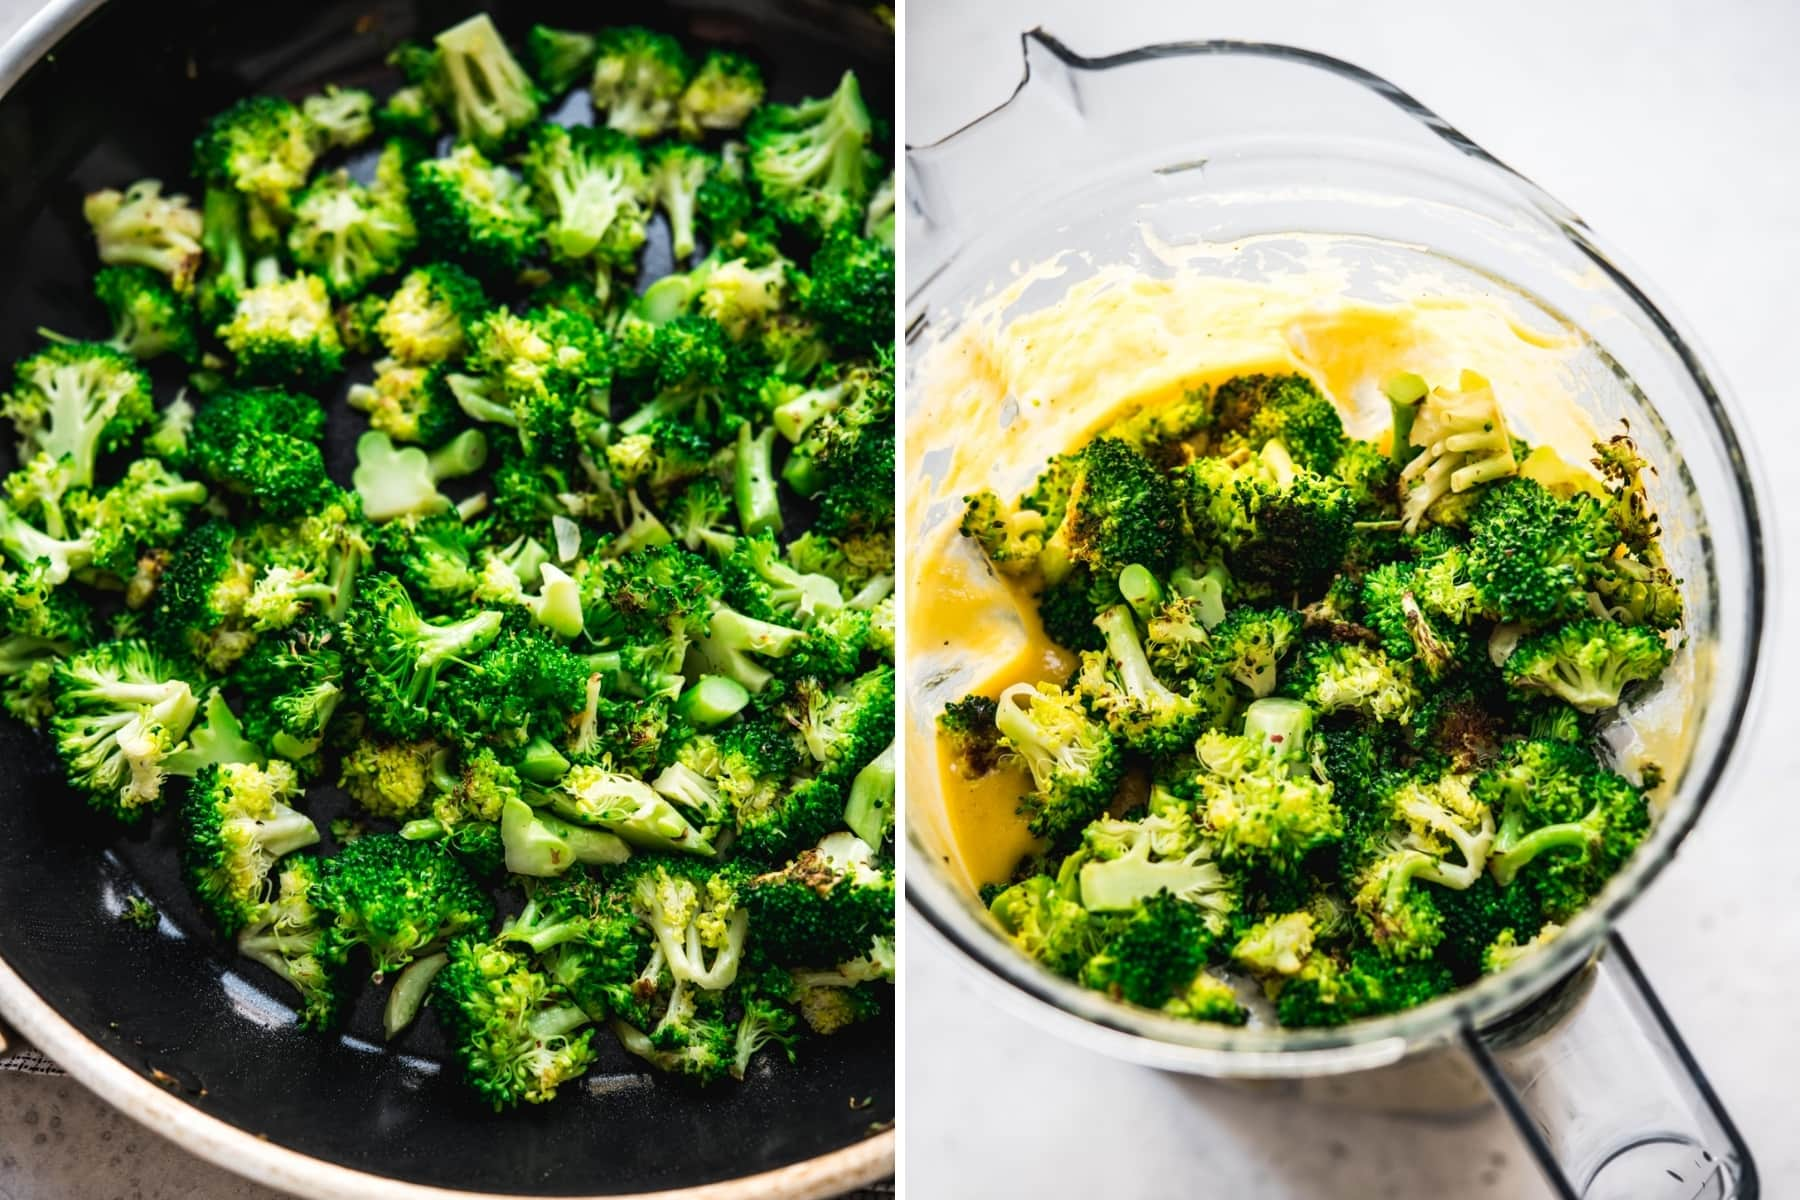 on the left: sautéed broccoli in pan. on the right: broccoli in blender with soup.